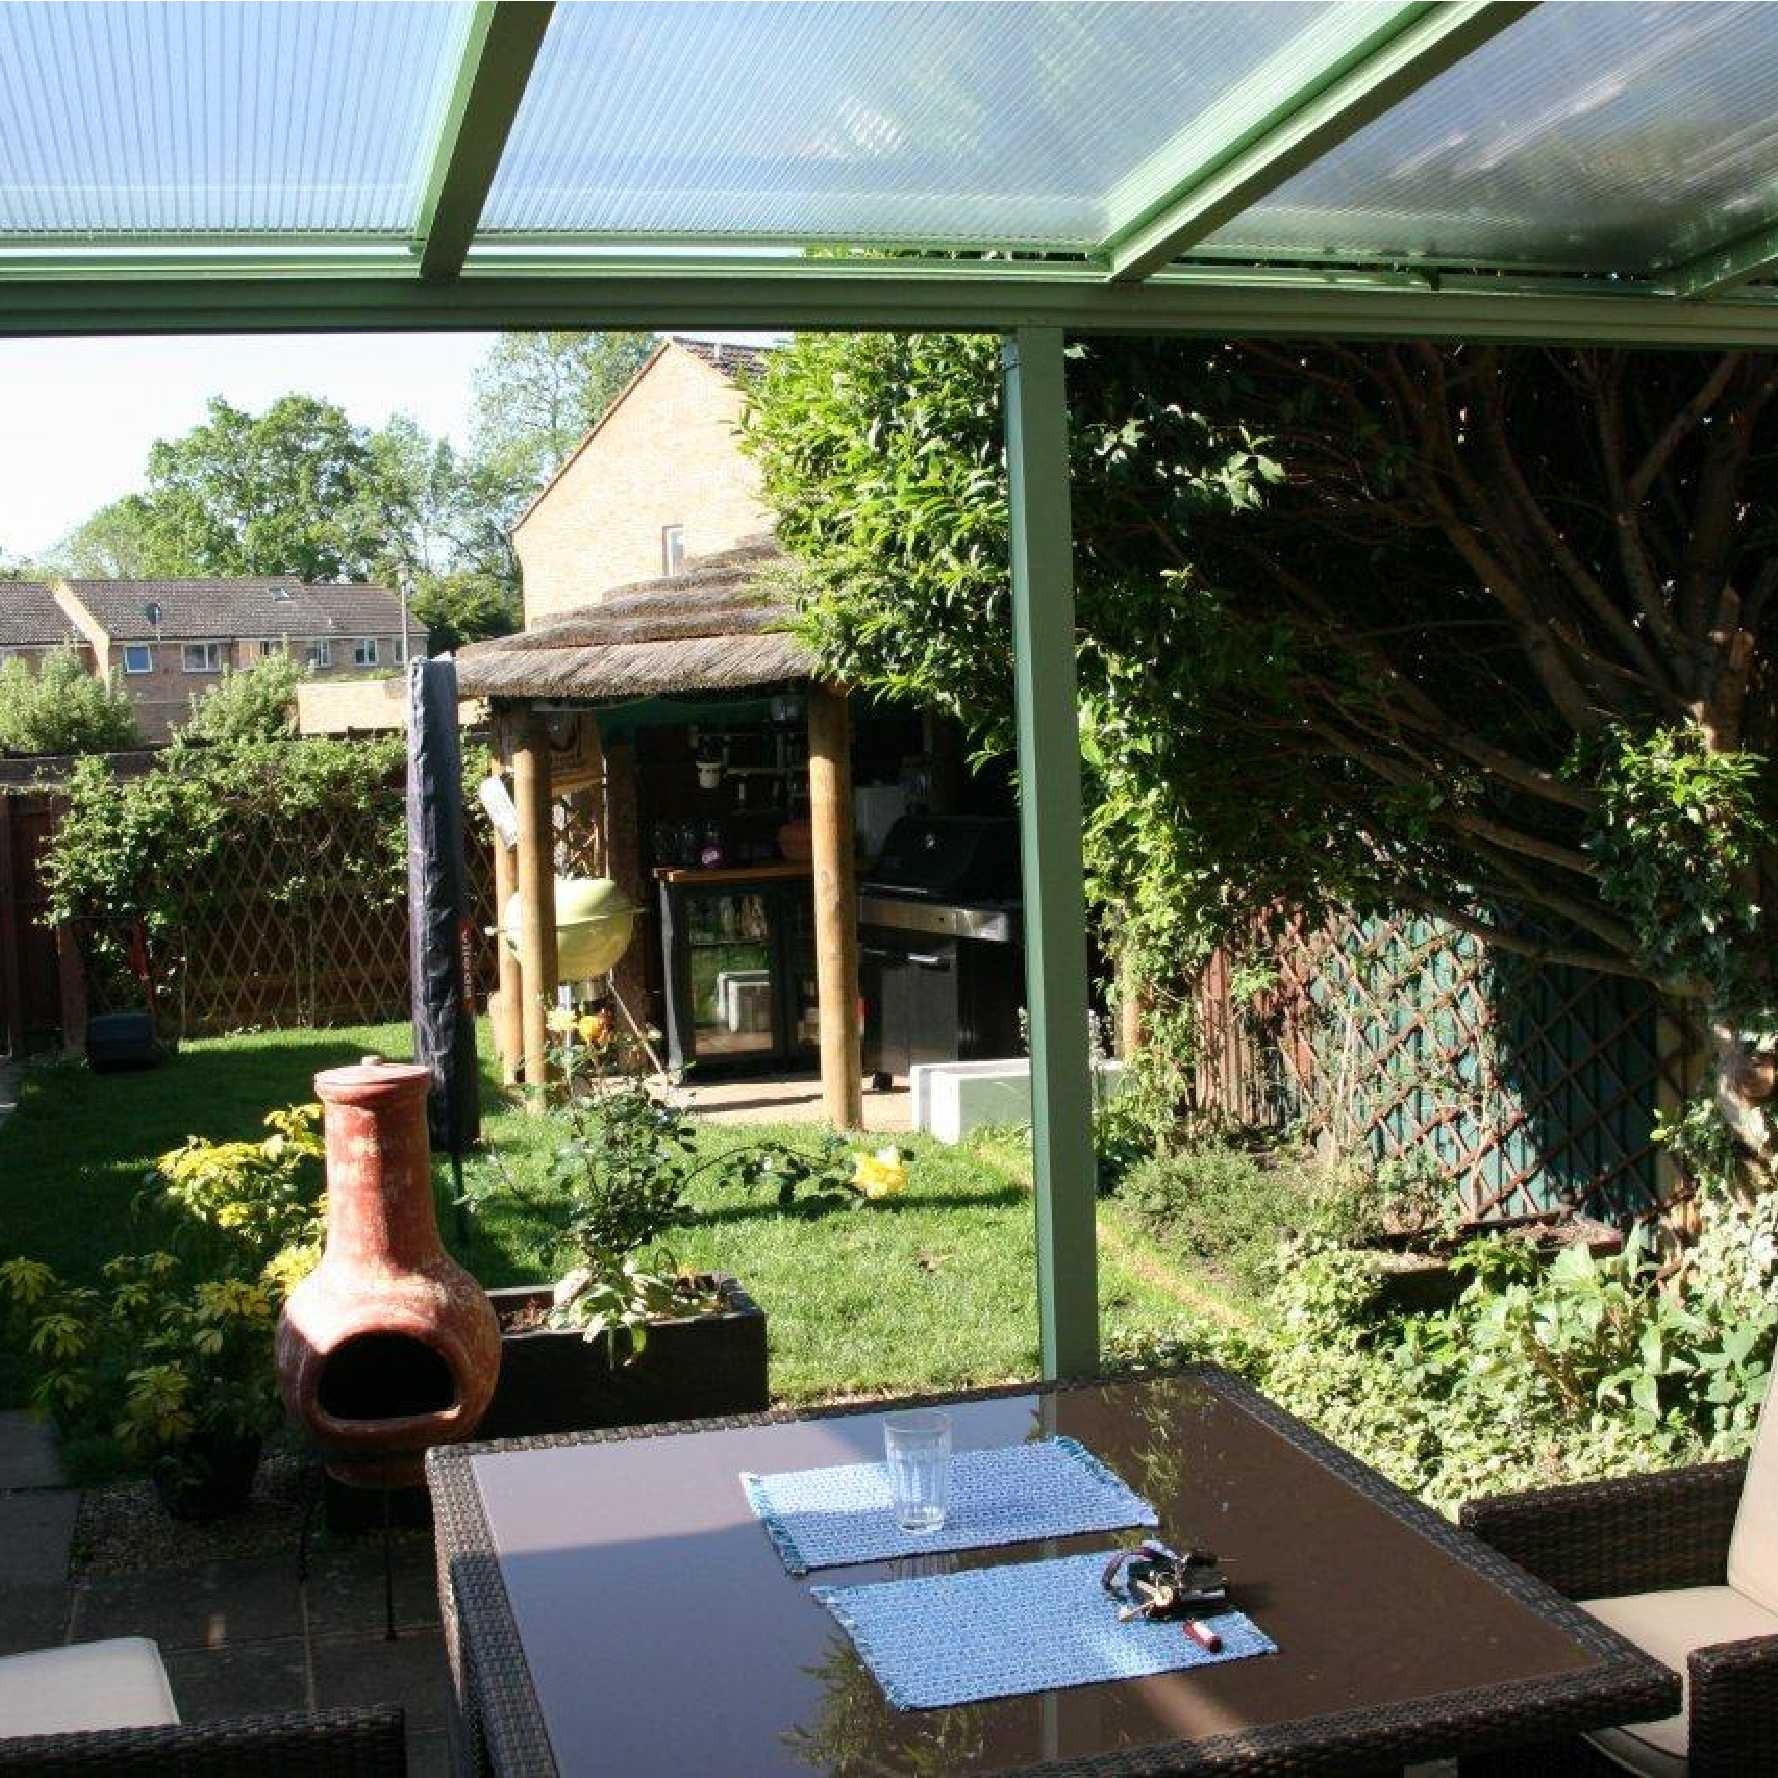 Affordable Omega Smart Lean-To Canopy with 16mm Polycarbonate Glazing - 5.2m (W) x 2.0m (P), (3) Supporting Posts